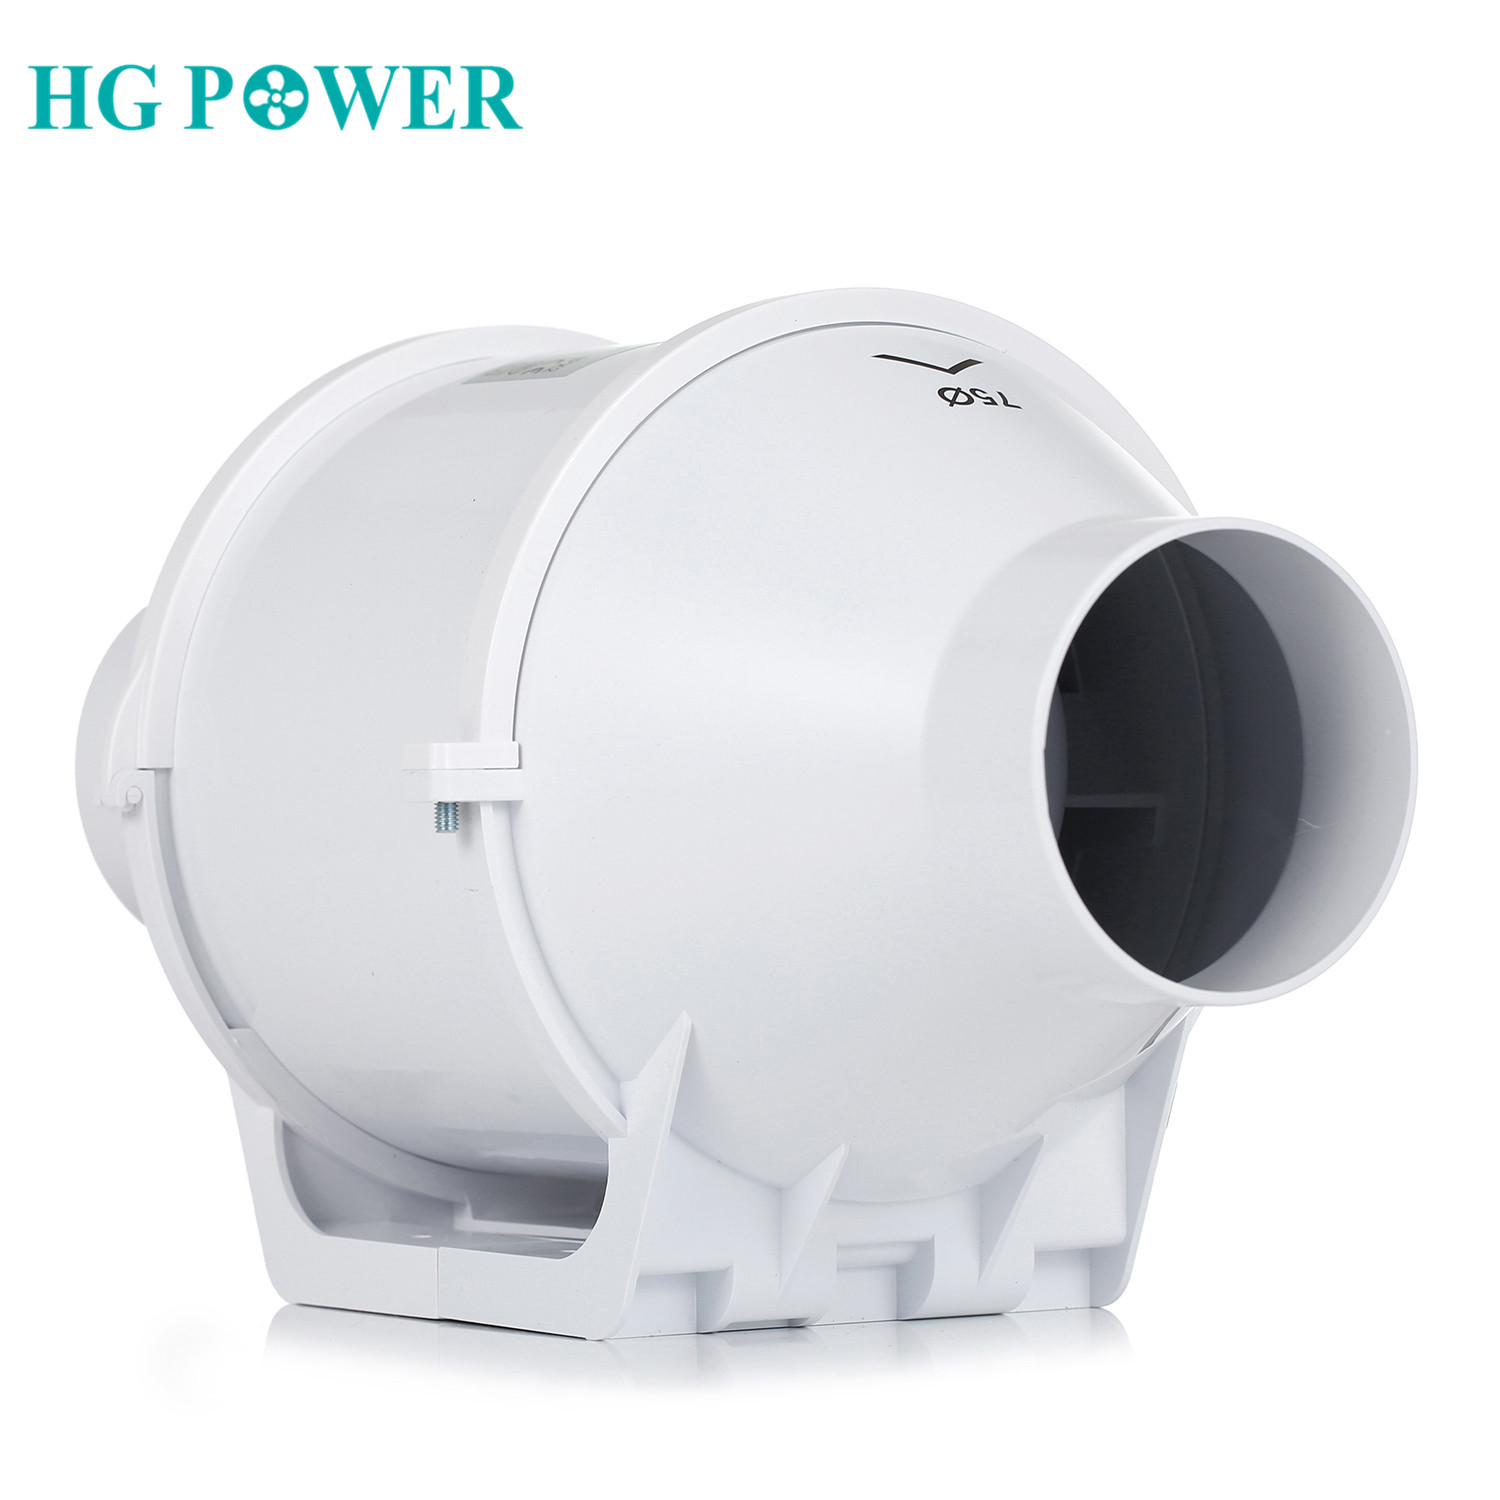 4'' Silent Home Inline <font><b>Duct</b></font> <font><b>Fan</b></font> <font><b>100mm</b></font> Exhaust <font><b>Fan</b></font> 220V Blower Booster Ventilator Ventilation System Turbo Toilet Air Extractor image